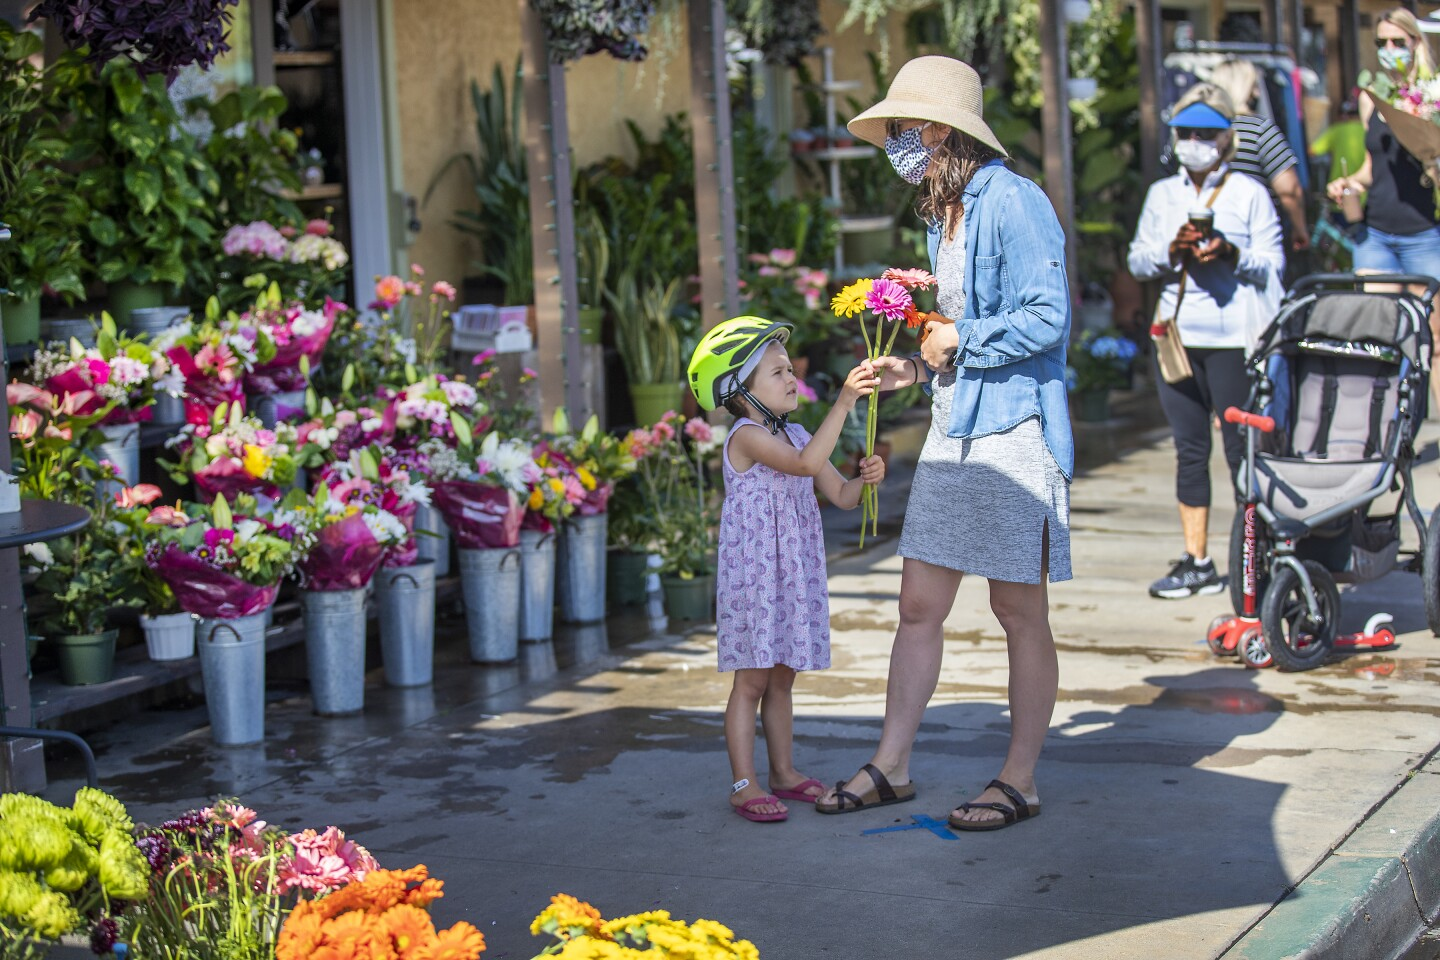 SEAL BEACH, CA -- FRIDAY, MAY 8, 2020: Christina Dagle, center, and her daughter Eleanor Eades, 4, of Seal Beach, wait in line six feet apart from others to buy flowers for a friend from Devynn's Garden in Seal Beach, CA, on May 8, 2020. Some businesses are reopening under a relaxation of the state's stay at home order. Bookstores, music stores, toy stores, florists, sporting goods retailers, clothing stores and others can reopen for pickup and curbside service. (Allen J. Schaben / Los Angeles Times)